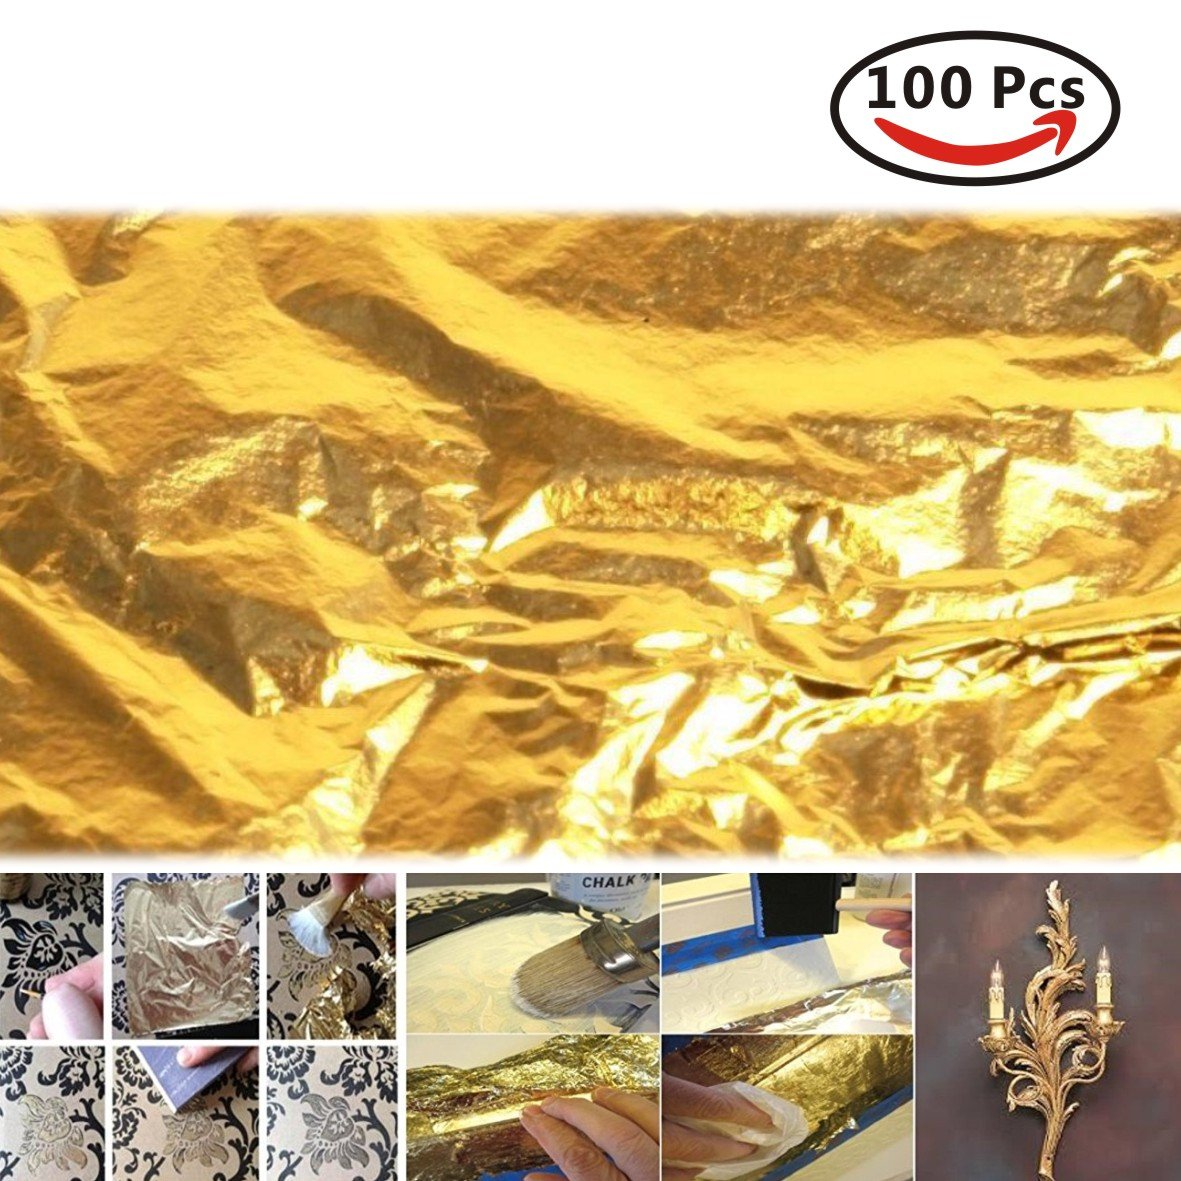 100pc 14x14cm 24k Gold Leaf Sheets/Leaves Gilding Nail Art Craft Supplies Mooin Joinin